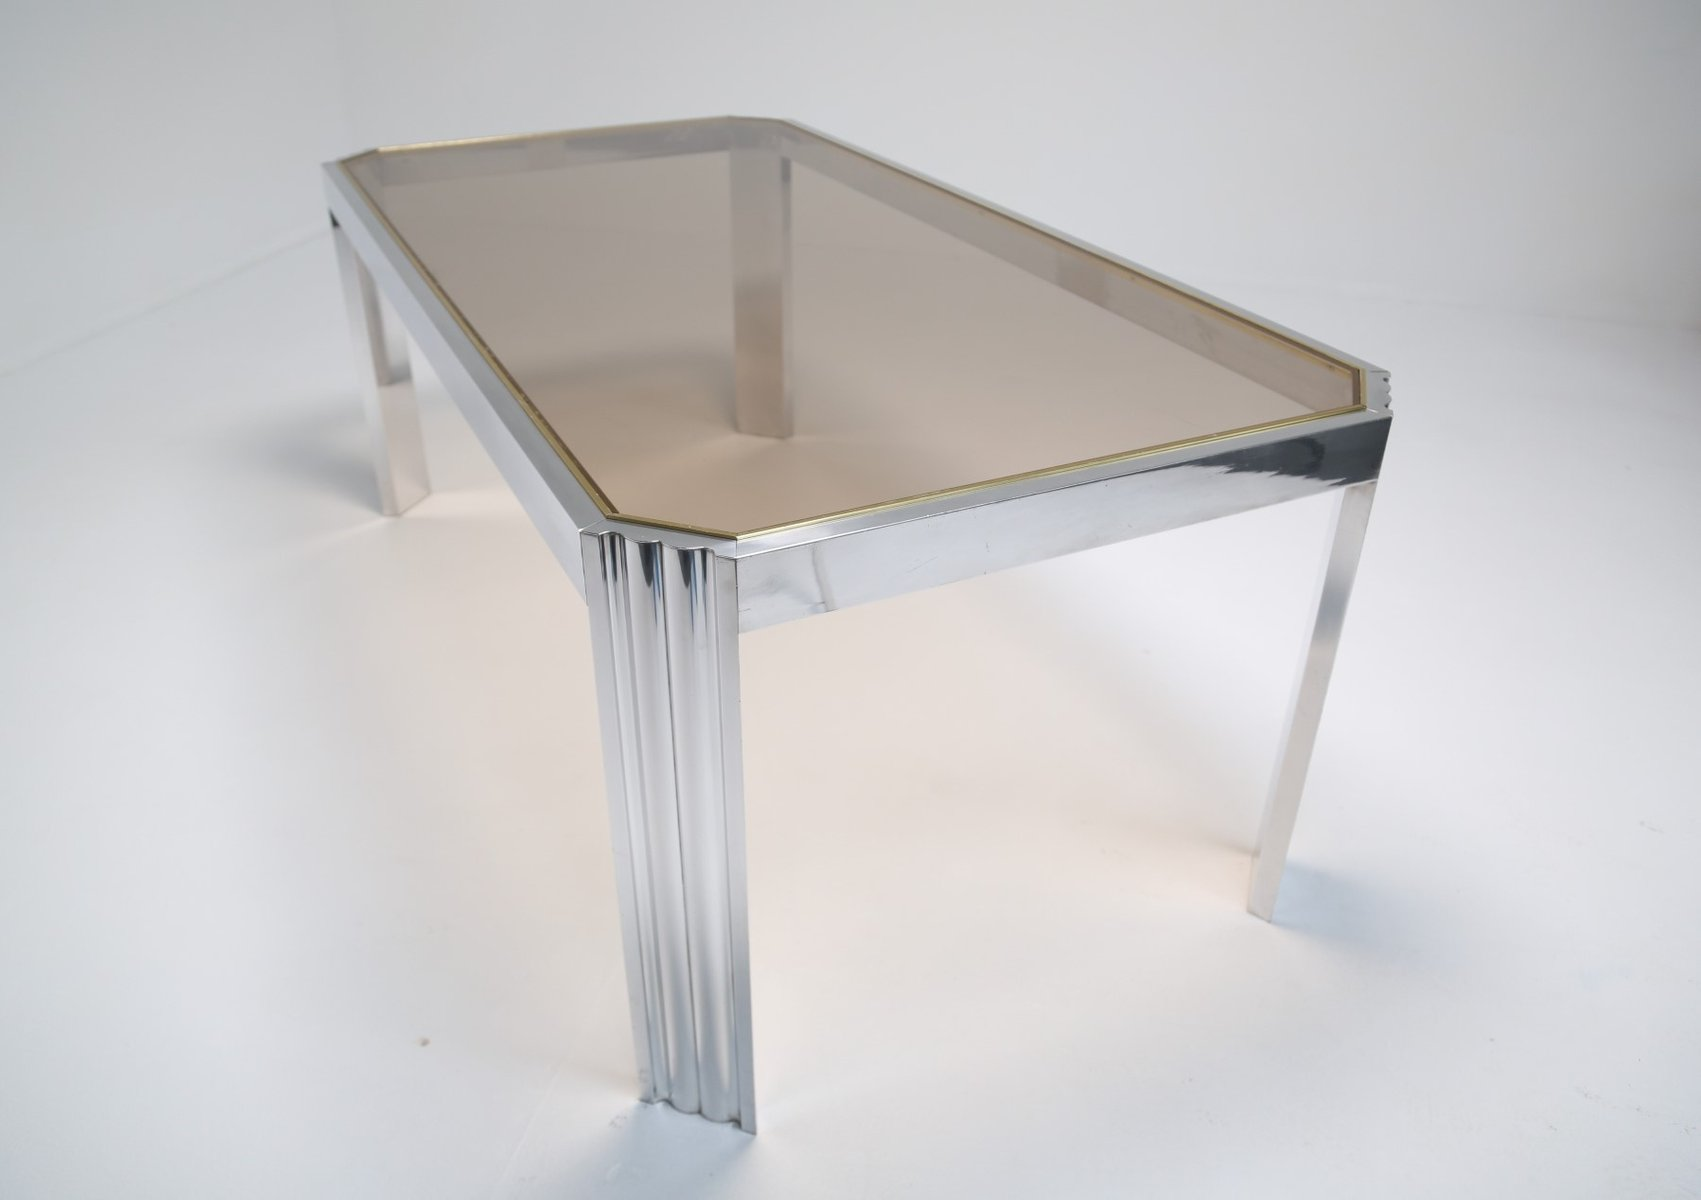 table de salle manger en aluminium et verre fum 1970s. Black Bedroom Furniture Sets. Home Design Ideas